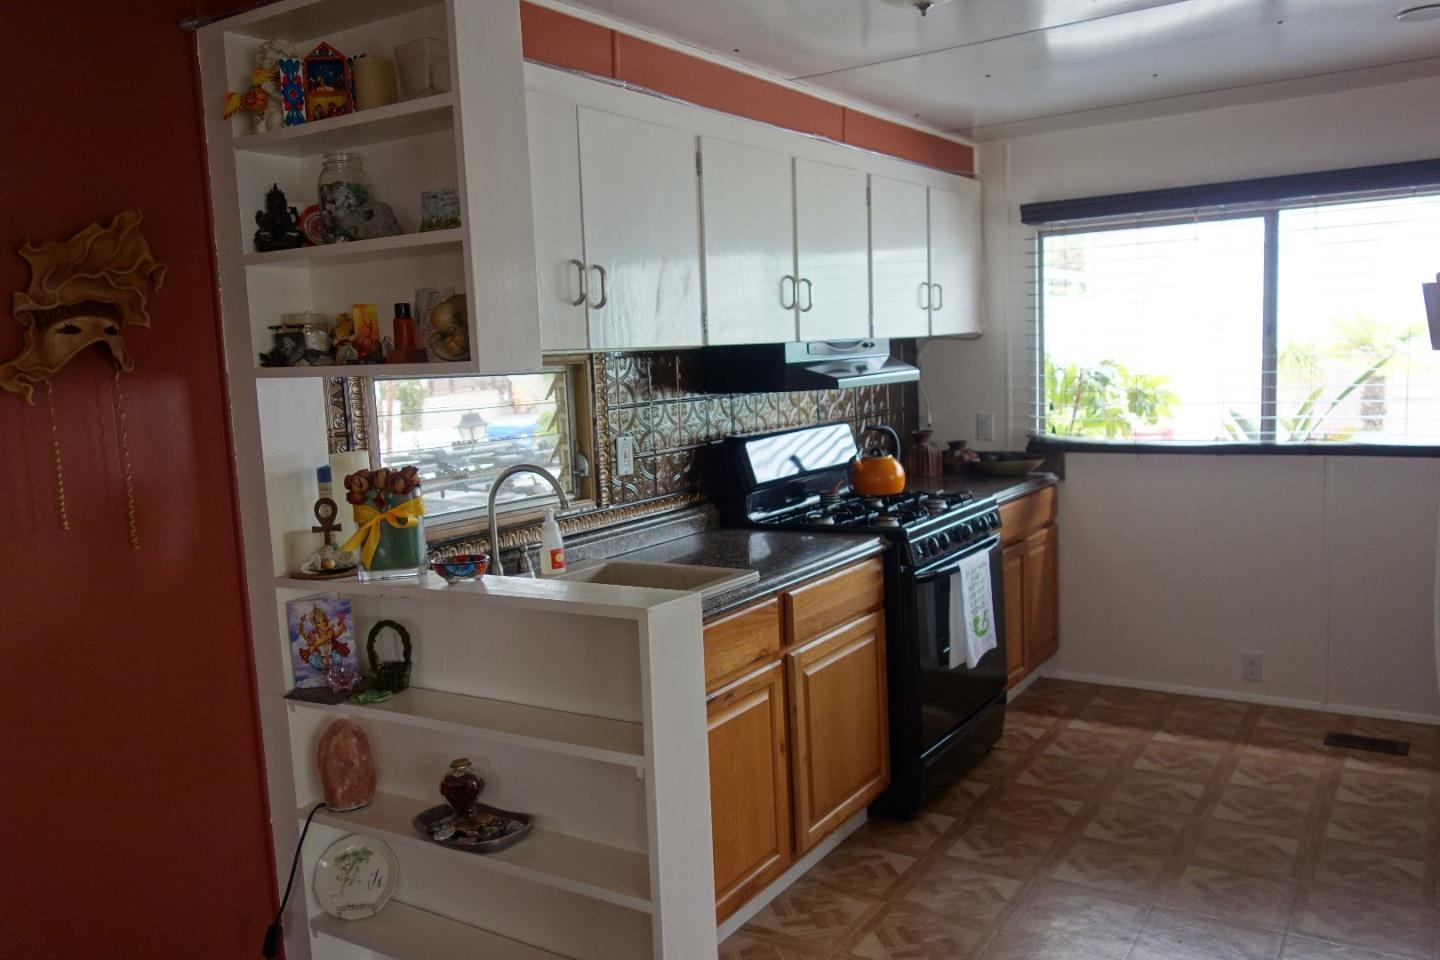 Additional photo for property listing at 925 38th  Santa Cruz, Kalifornien 95062 Vereinigte Staaten